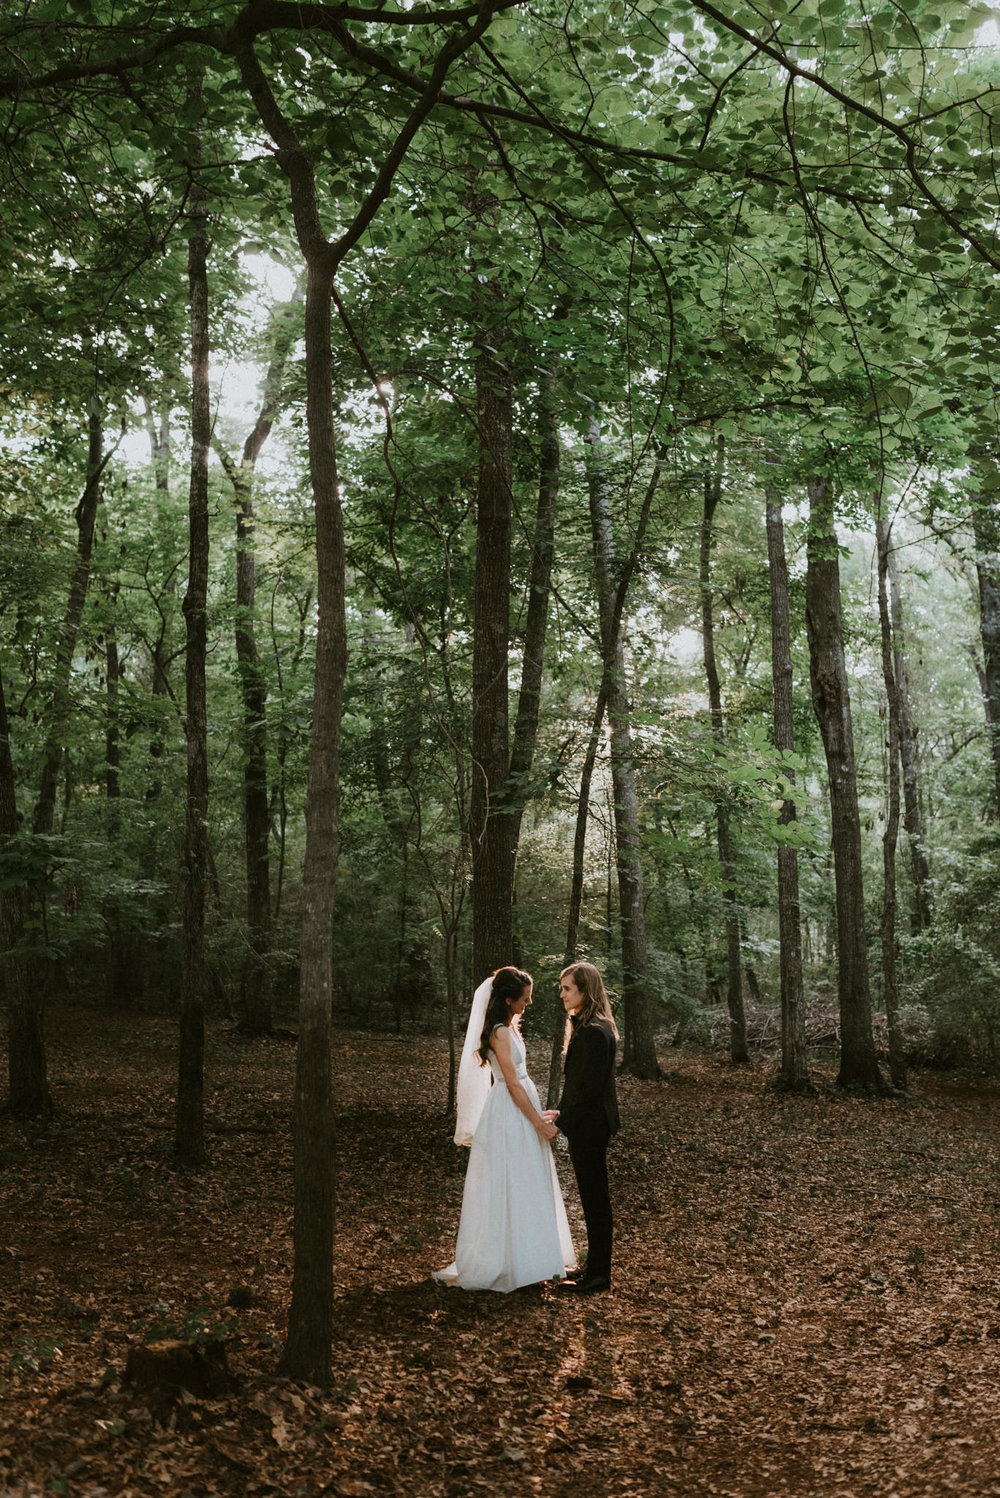 intimate-small-backyard-forest-wedding-nacogdoches-houston-wedding-photographer-kerlyn-van-gelder-photography